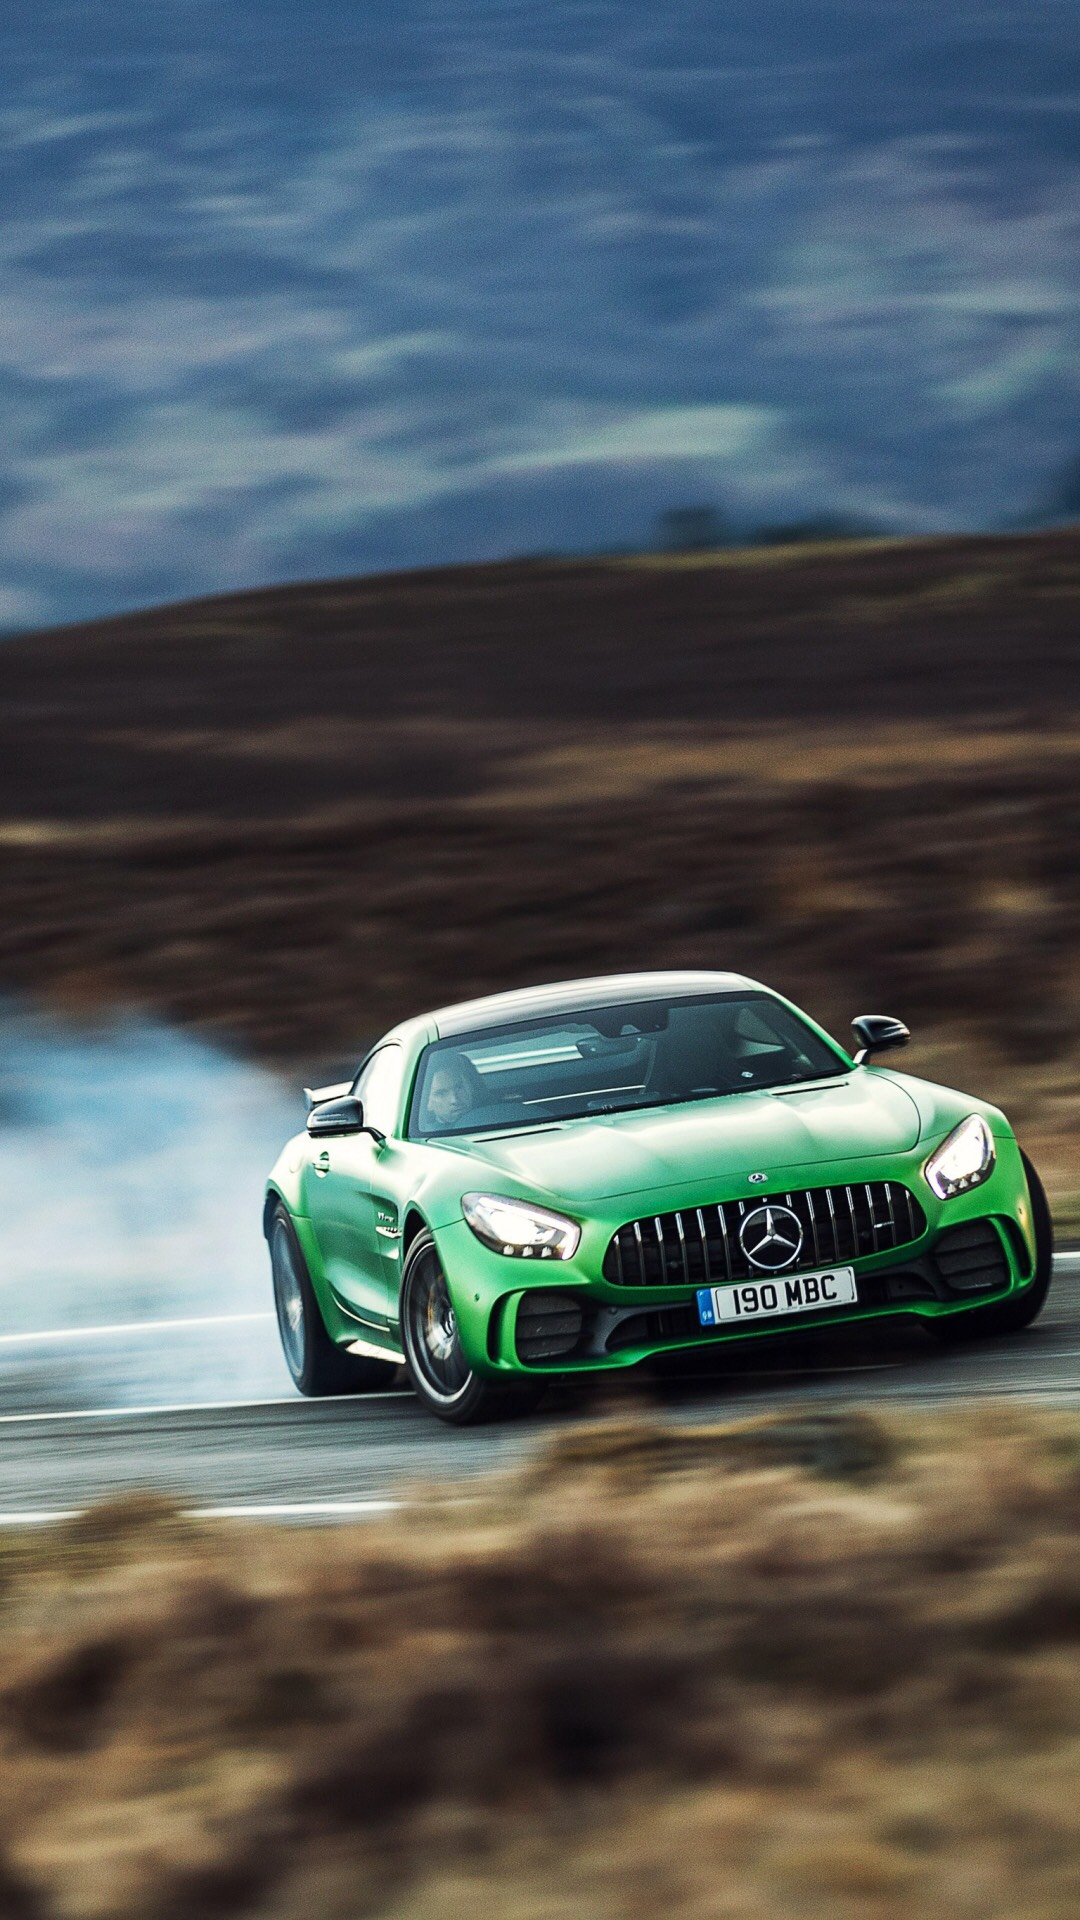 Amg Gtr Wallpaper Posted By Michelle Tremblay